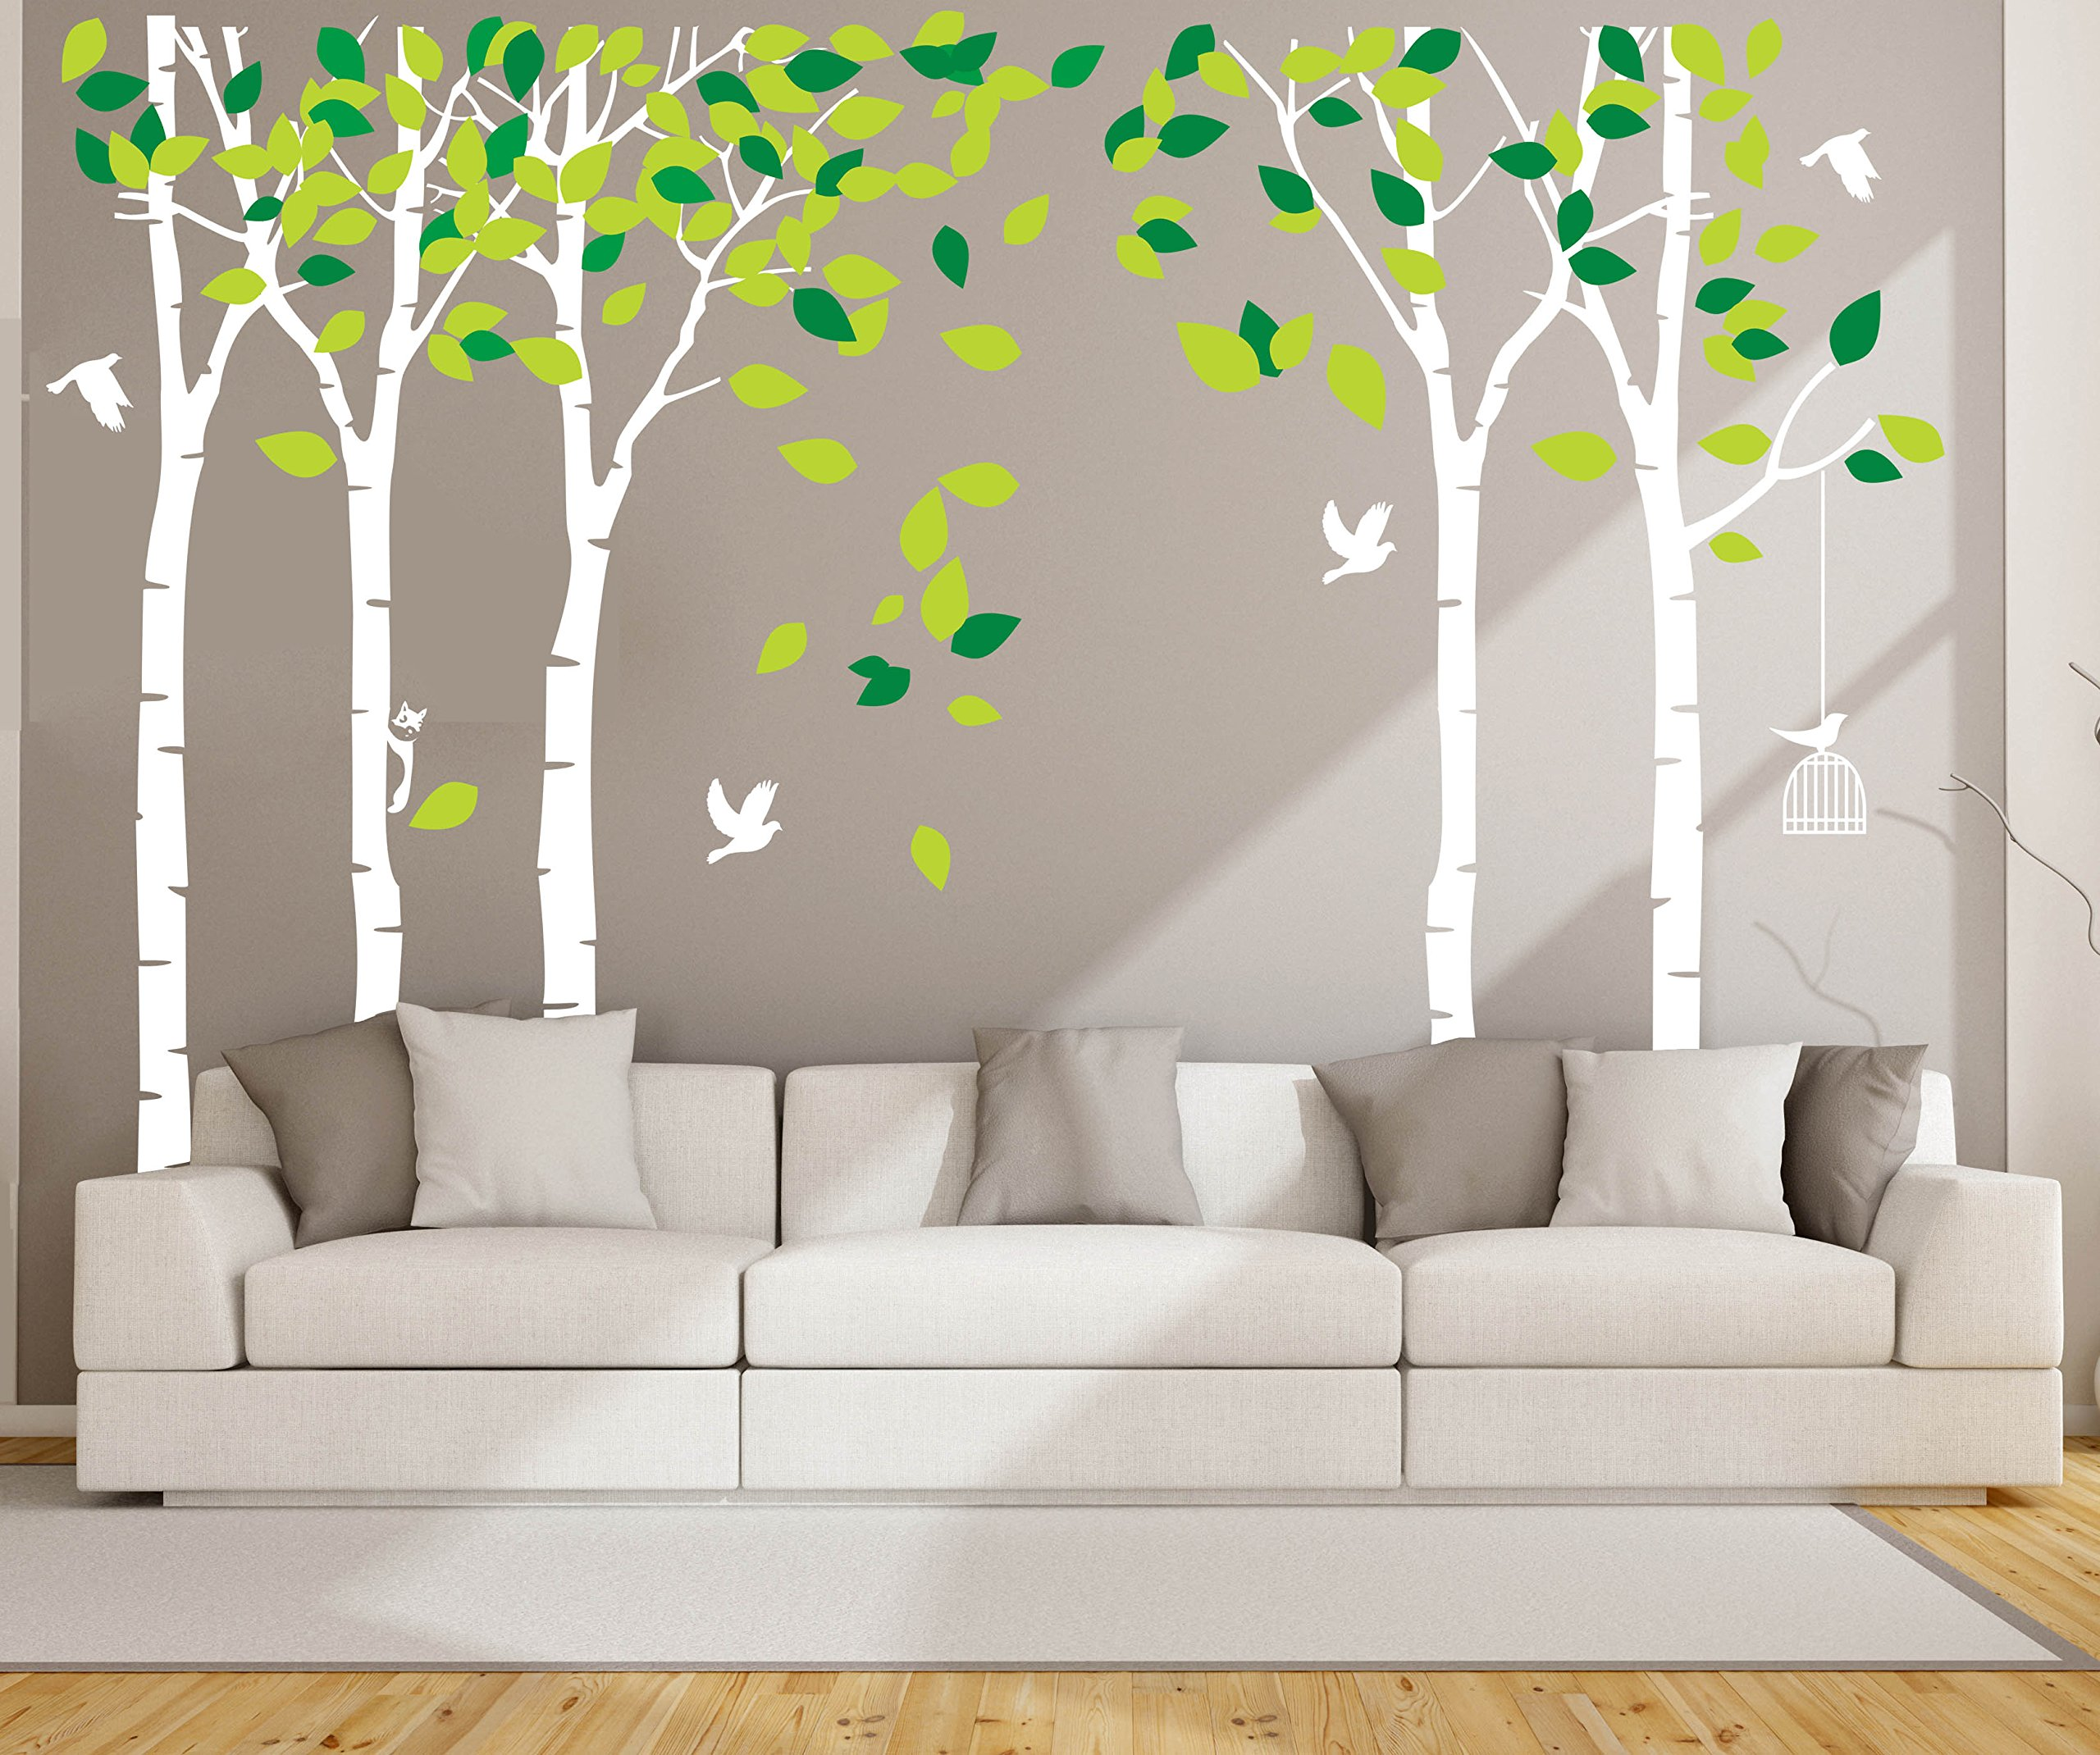 Anber Giant Jungle Tree Wall Decal Removable Vinyl Mural Art